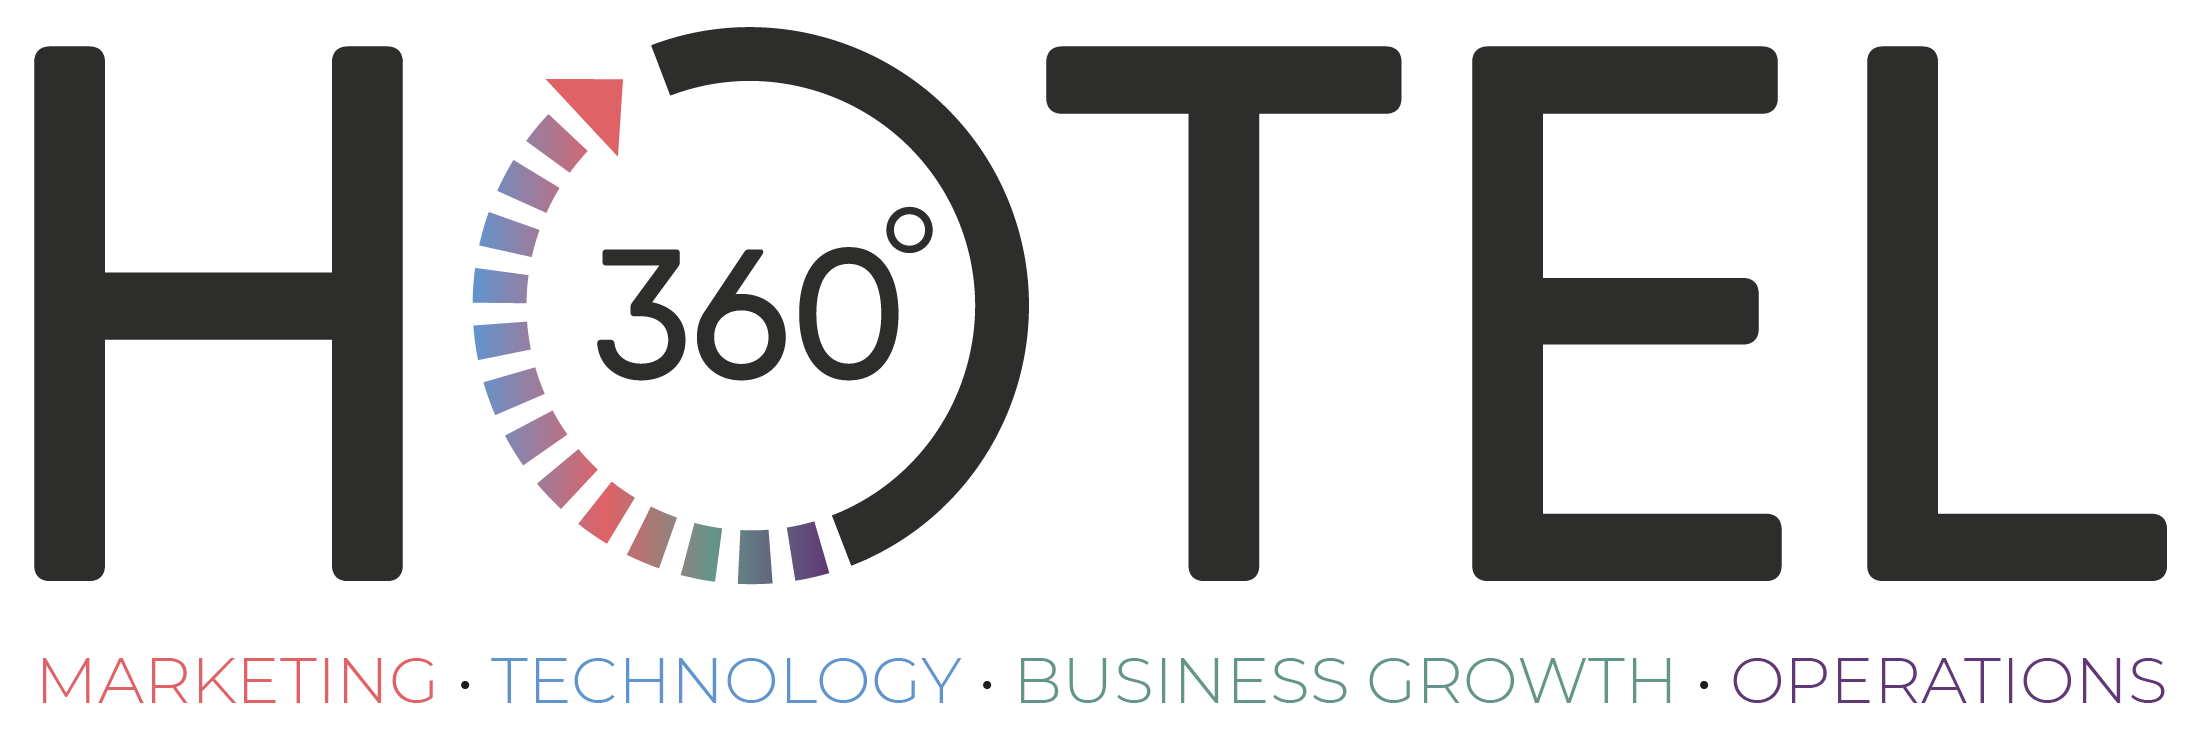 Order free tickets for the show